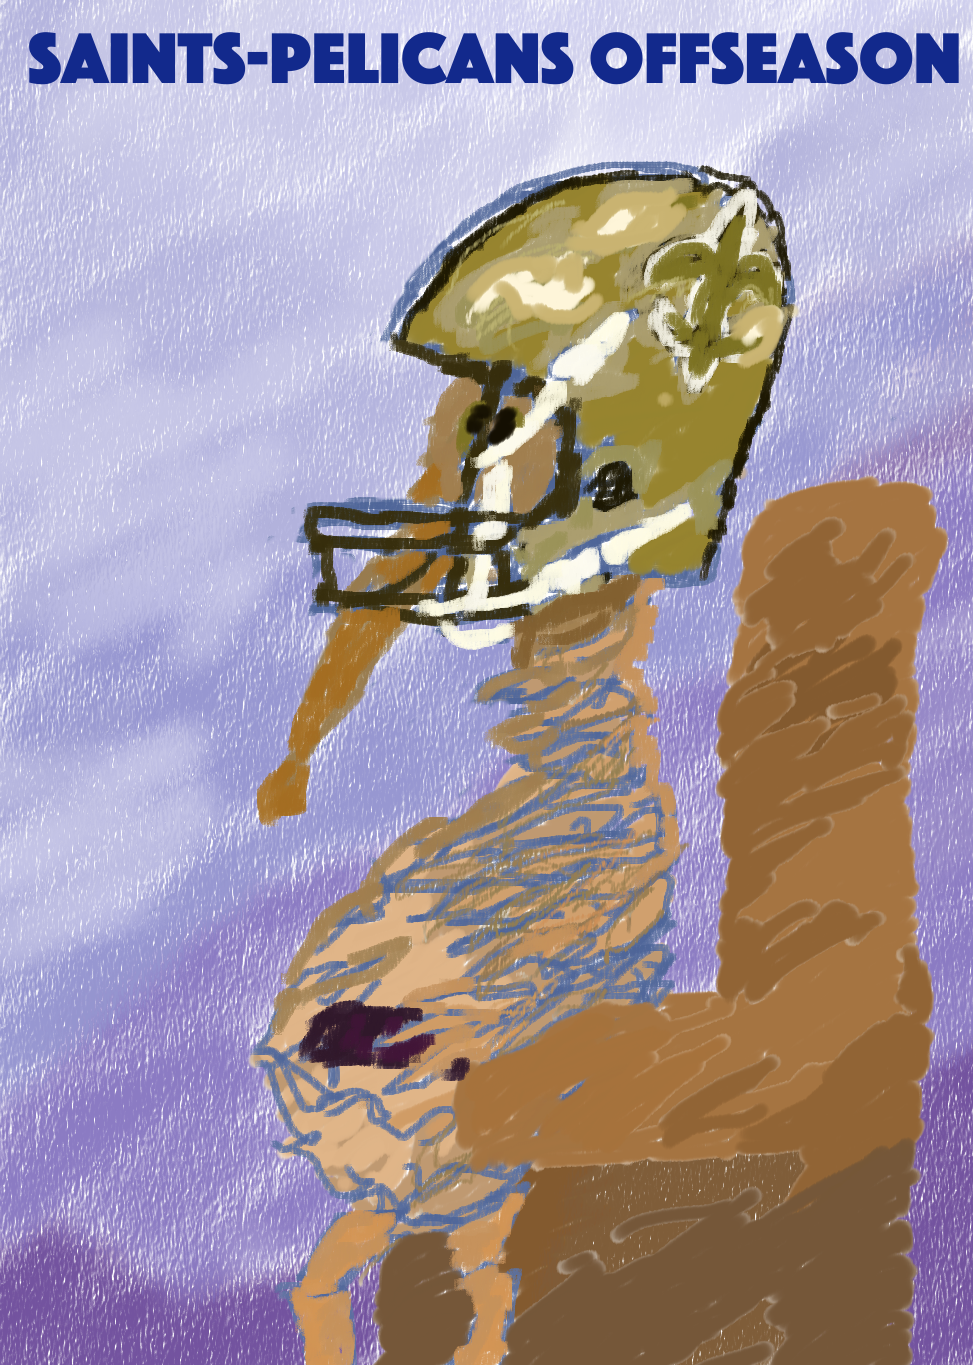 Pelican in Saints helmet